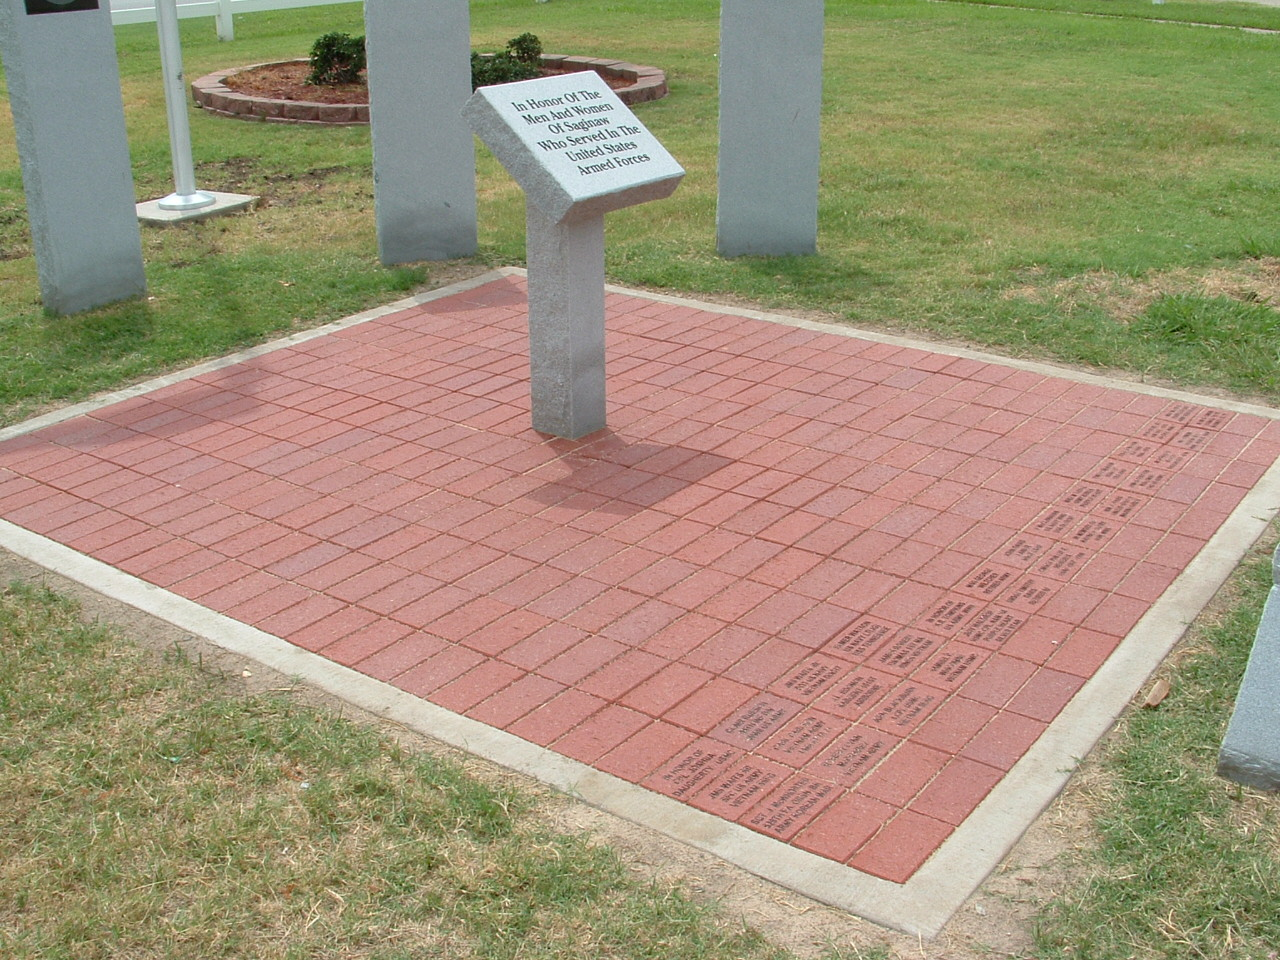 Veteran's Memorial bricks in Kiwanis Park